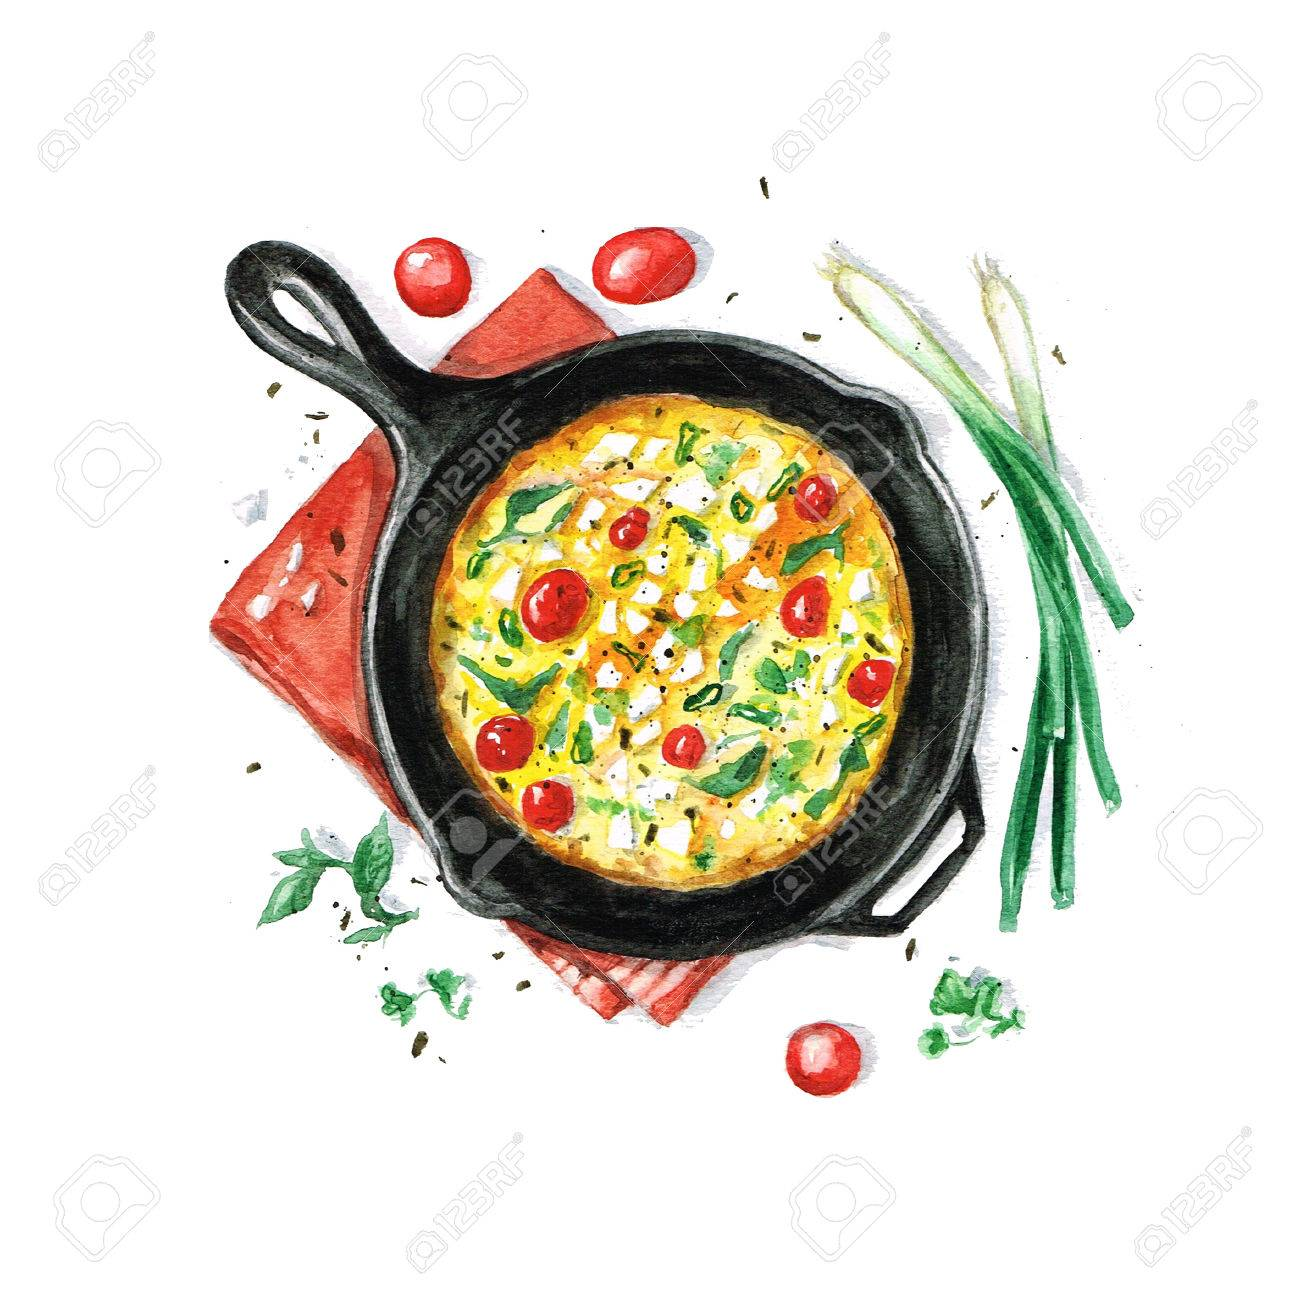 Fritata - Watercolor Food Collection - 51397731